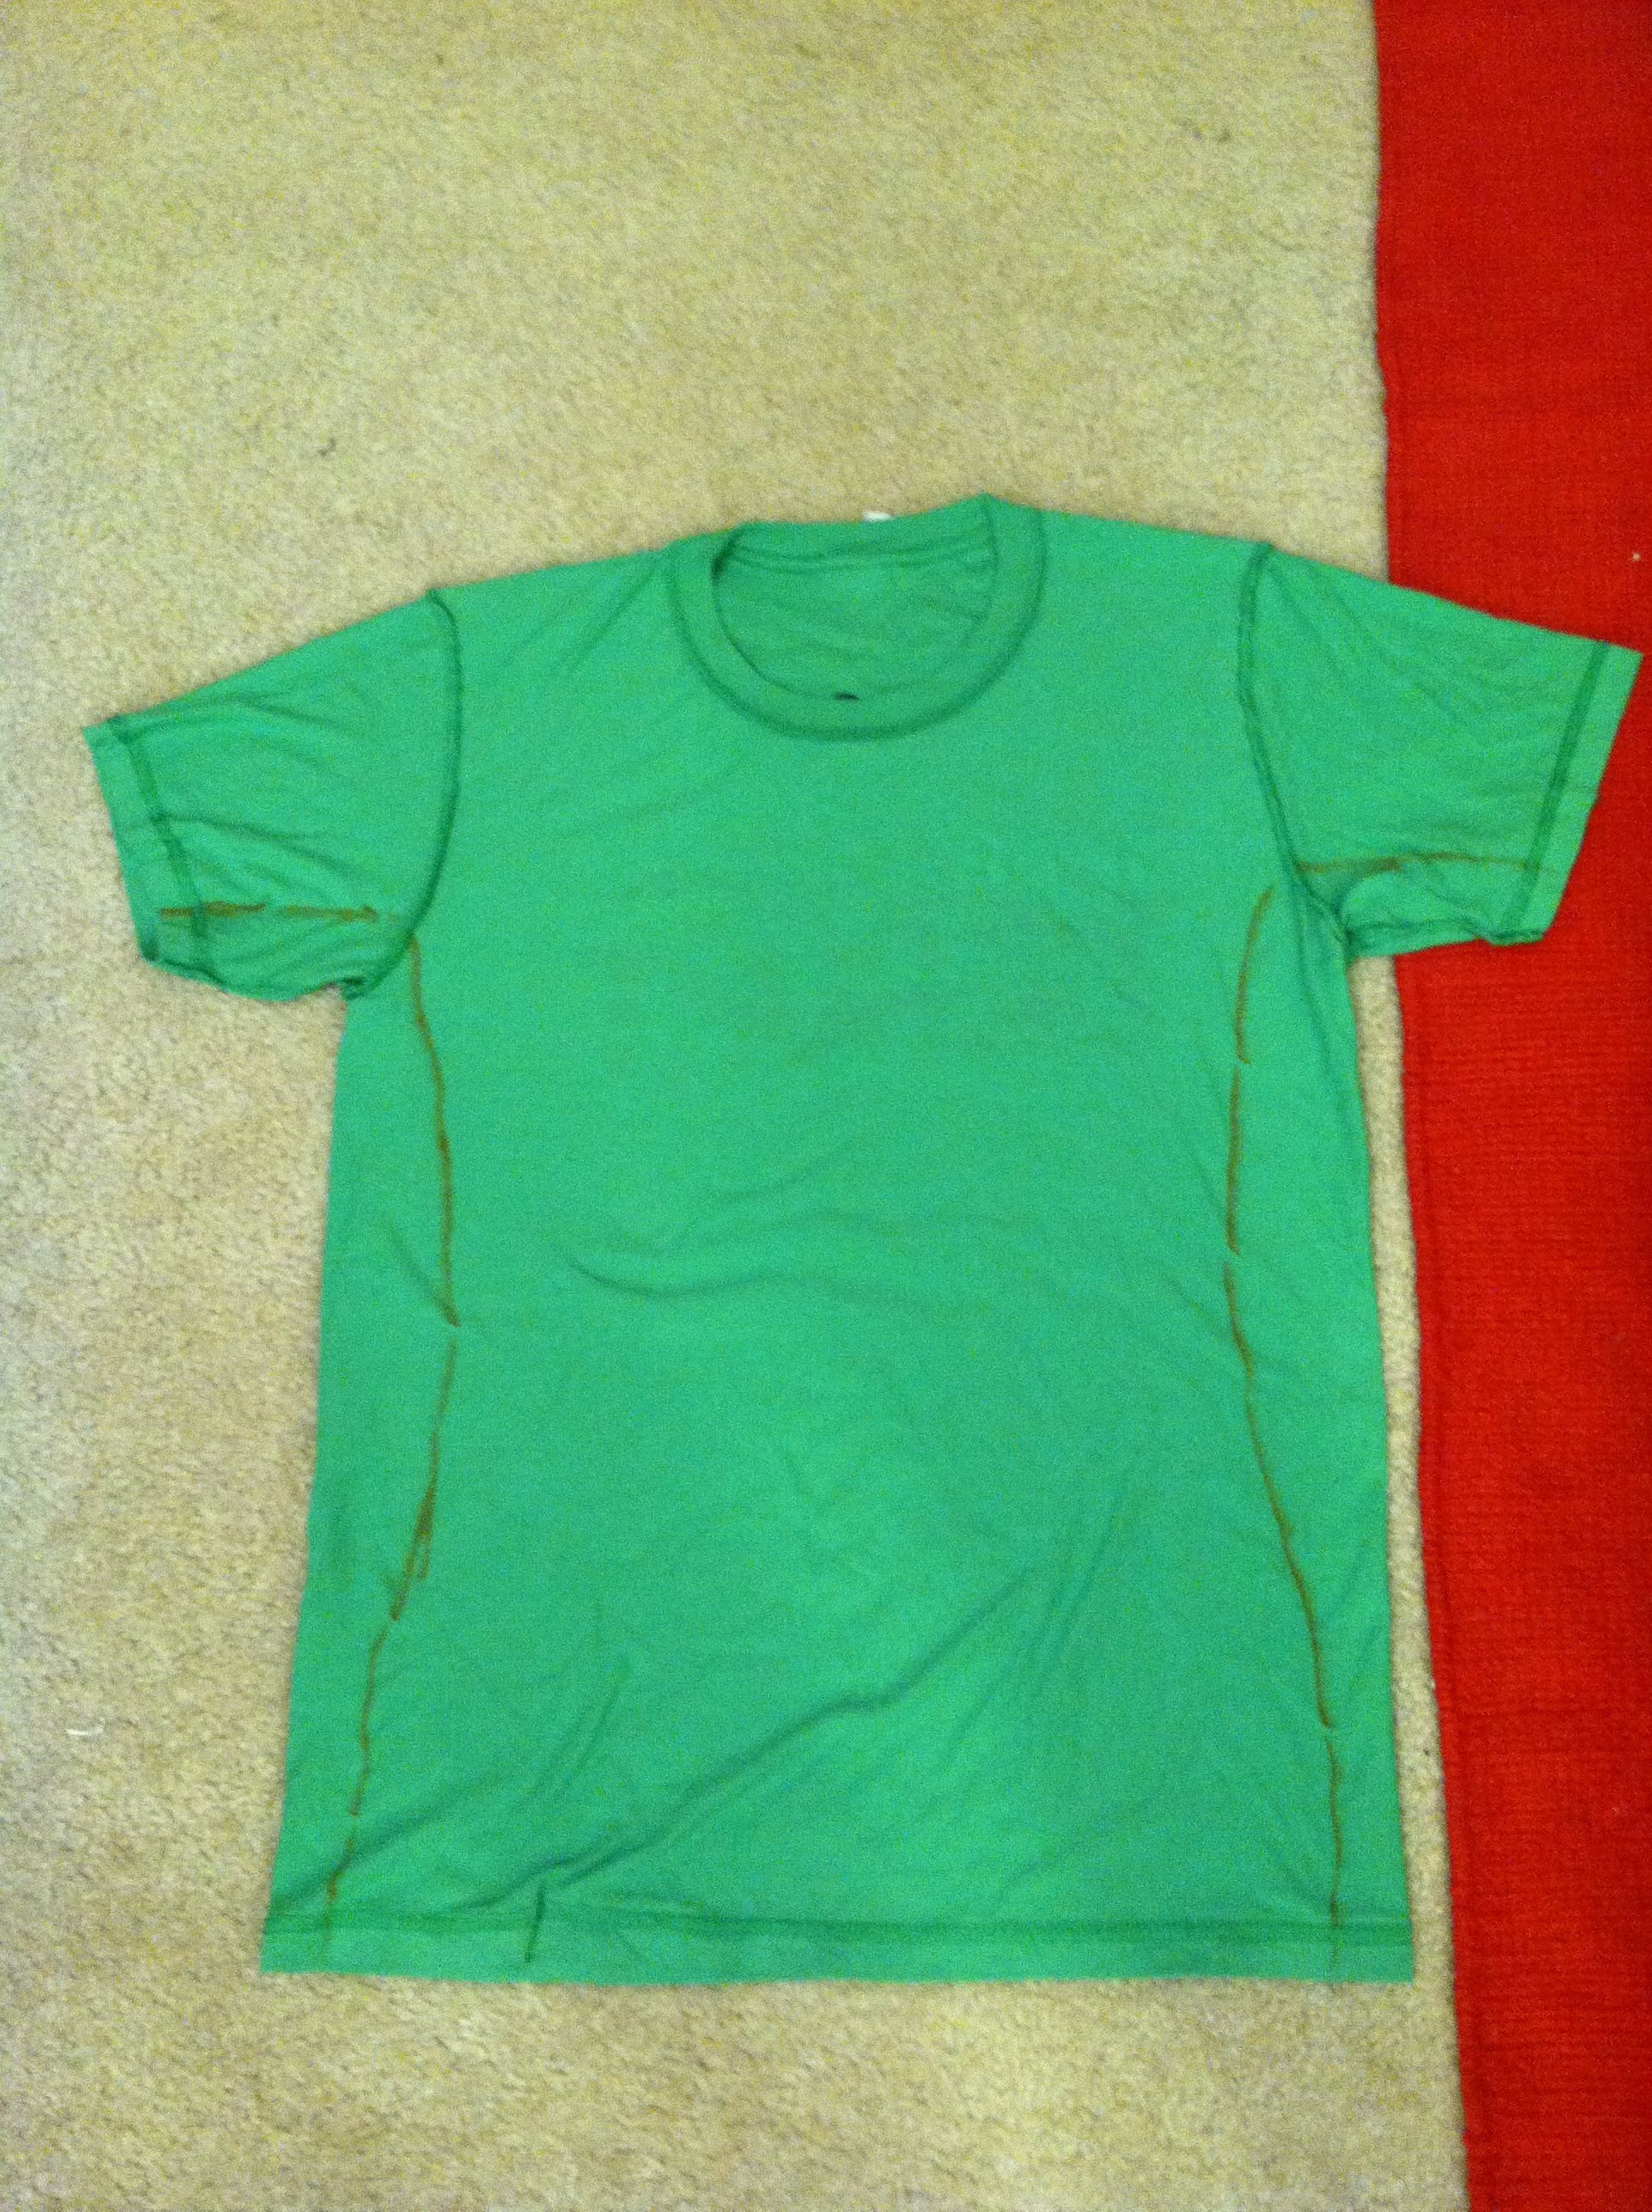 Diy how to make tshirts smaller to fit you how to make